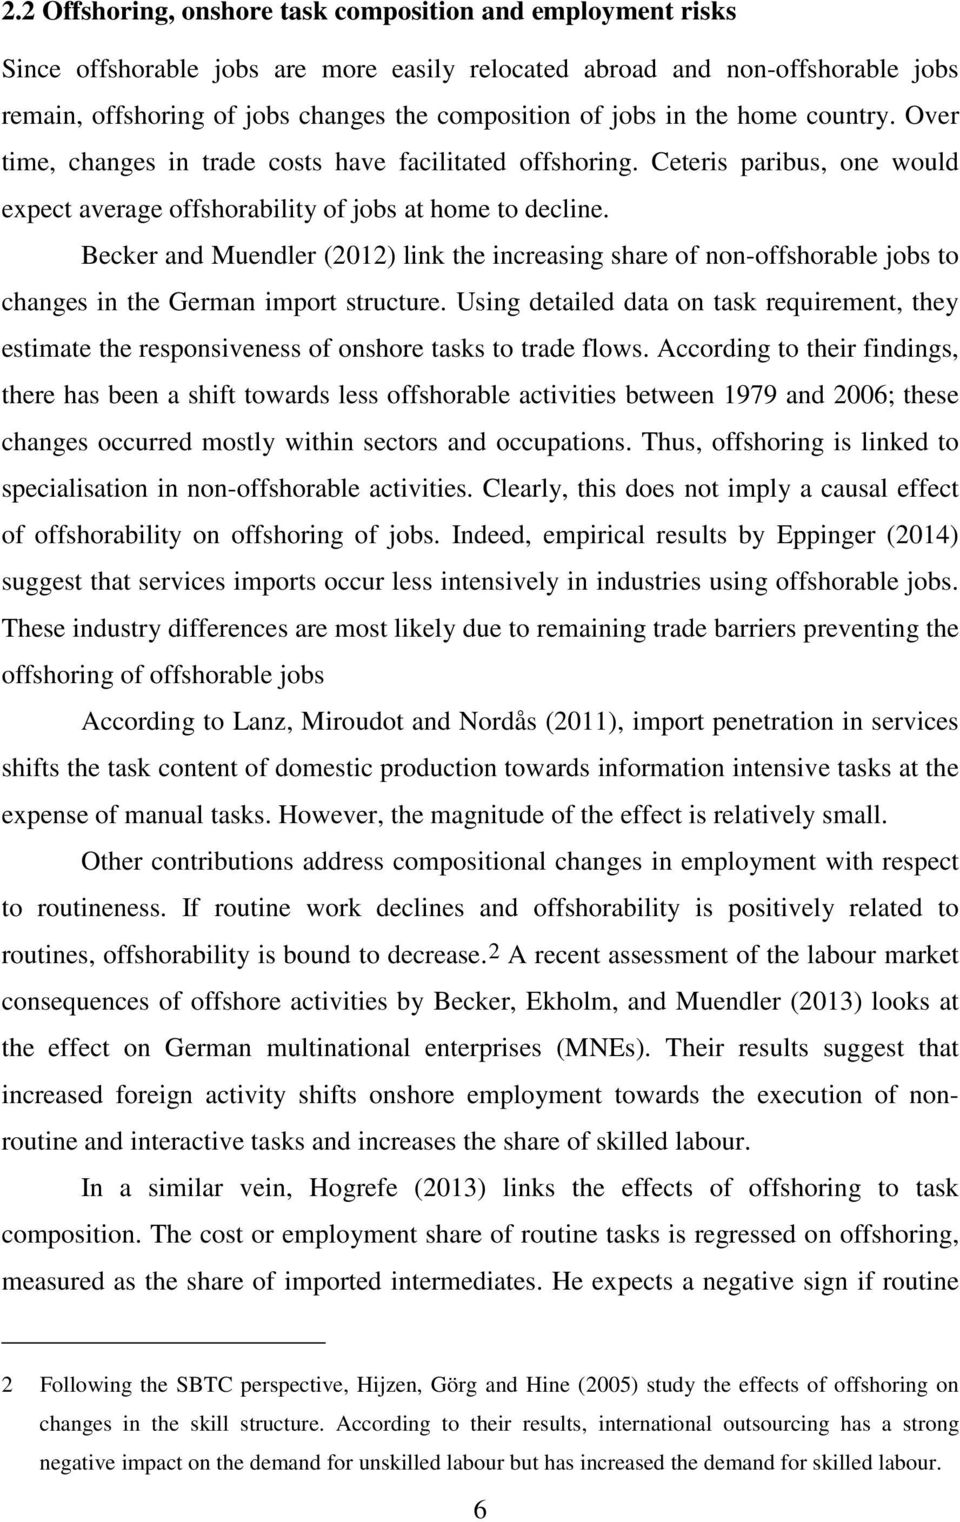 Becker and Muendler (2012) link the increasing share of non-offshorable jobs to changes in the German import structure.